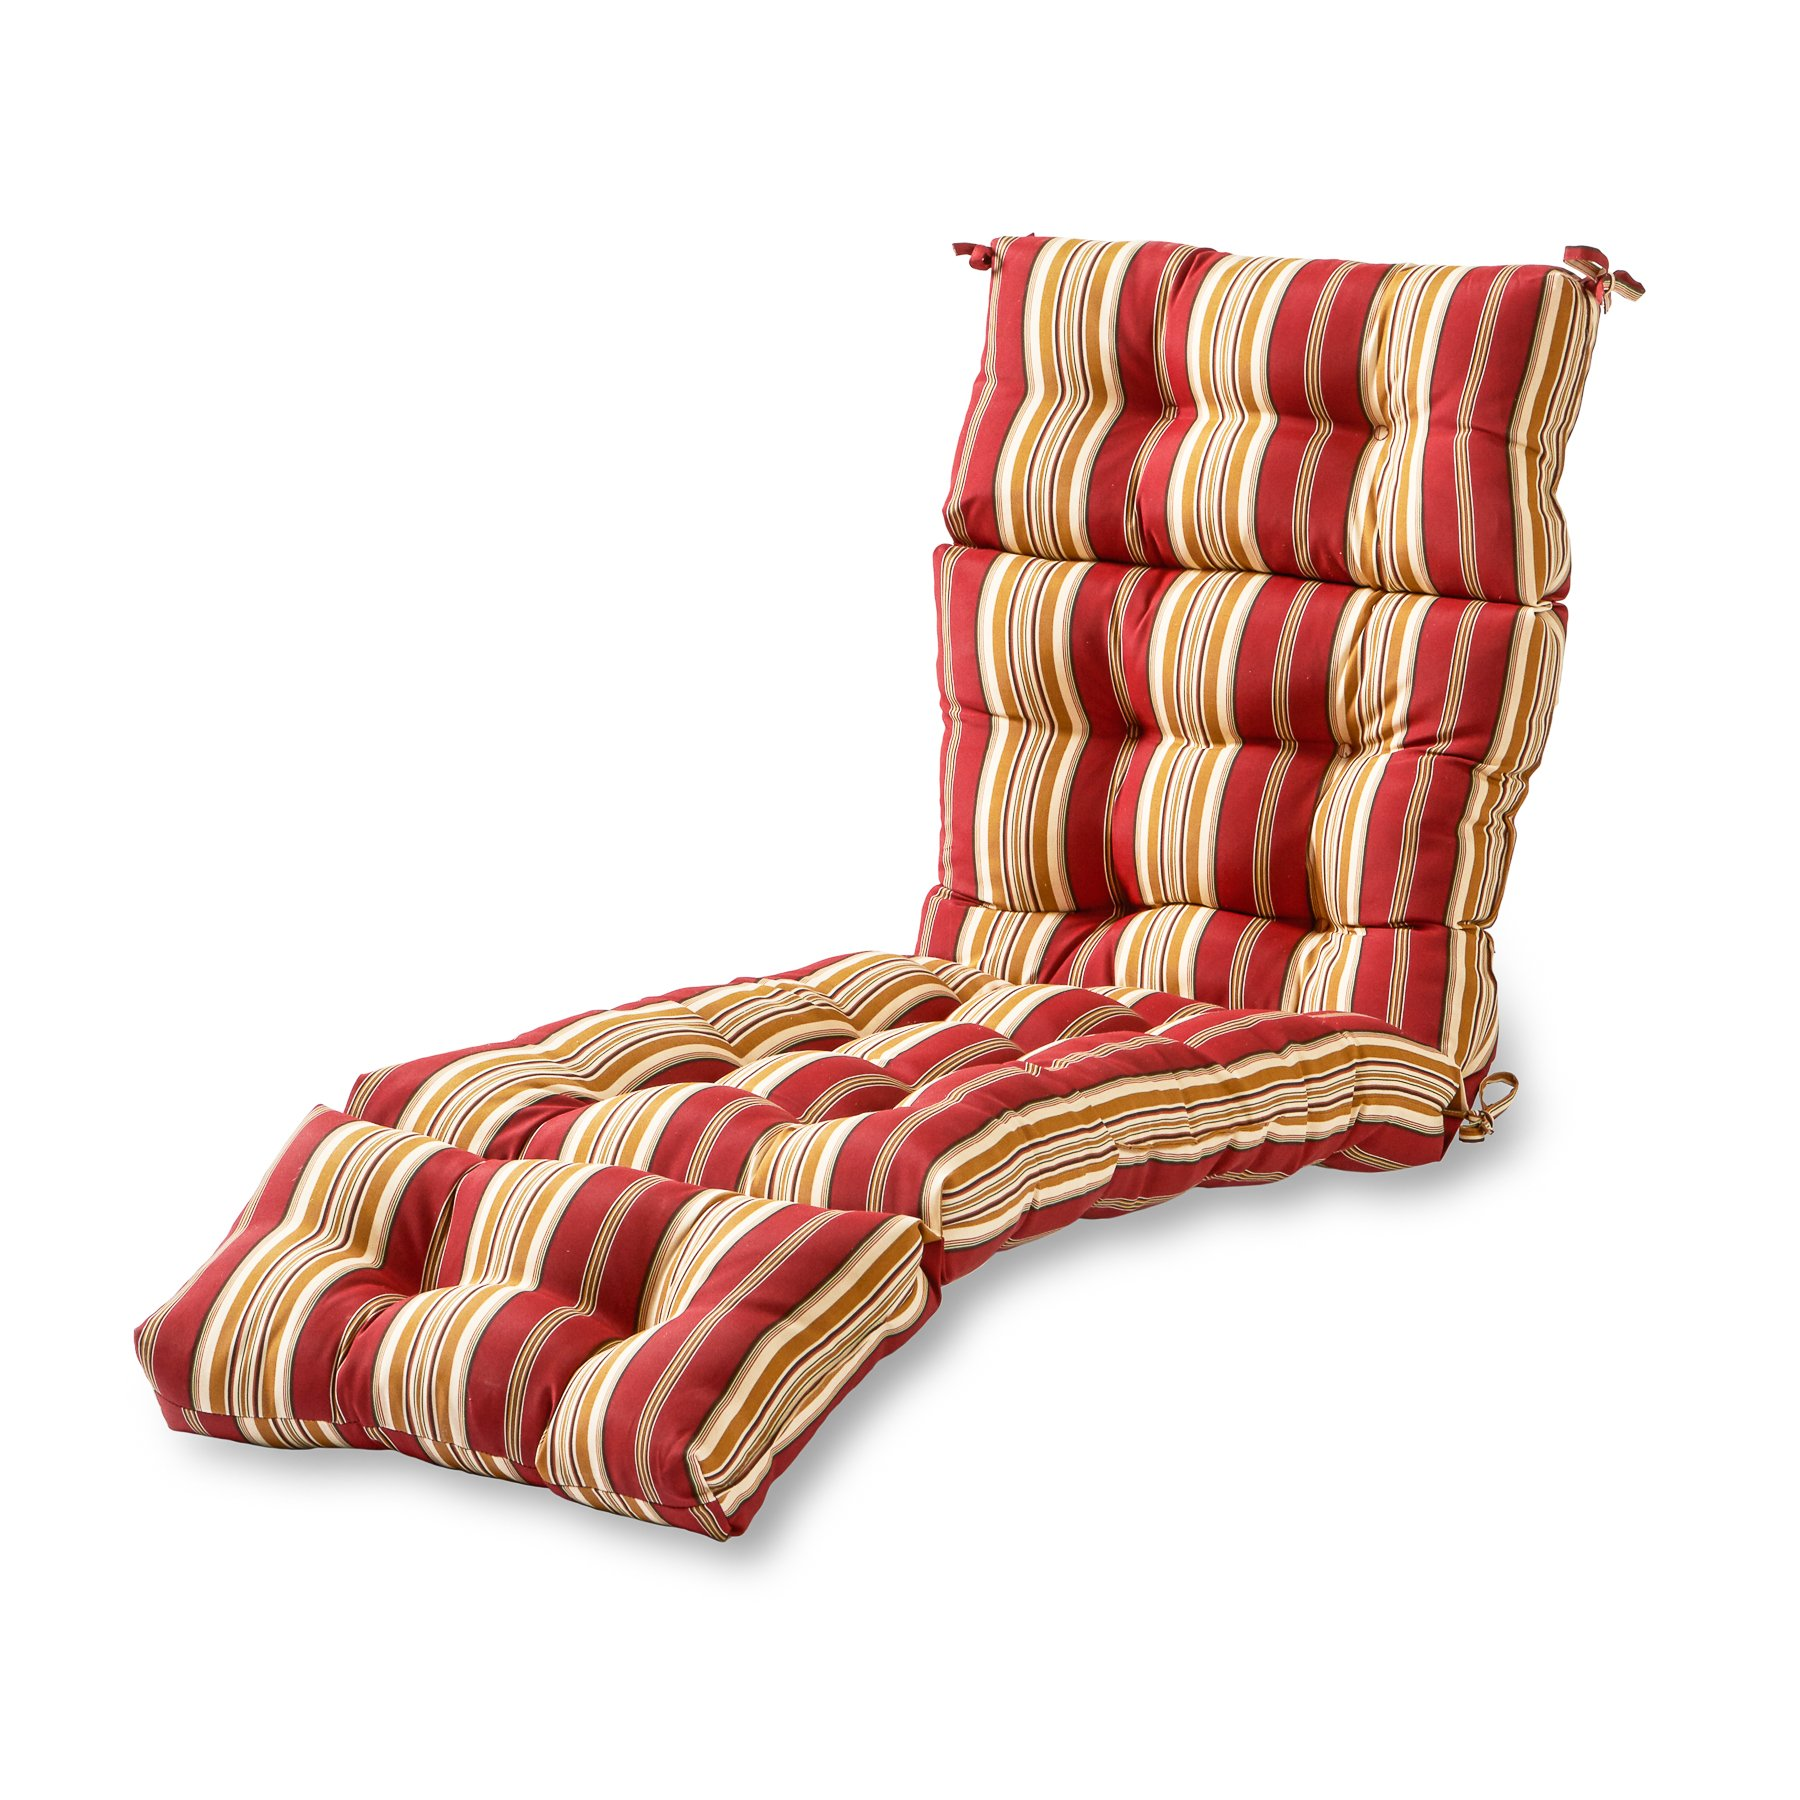 Greendale Home Fashions 72-Inch Patio Chaise Lounger Cushion, Roma Stripe